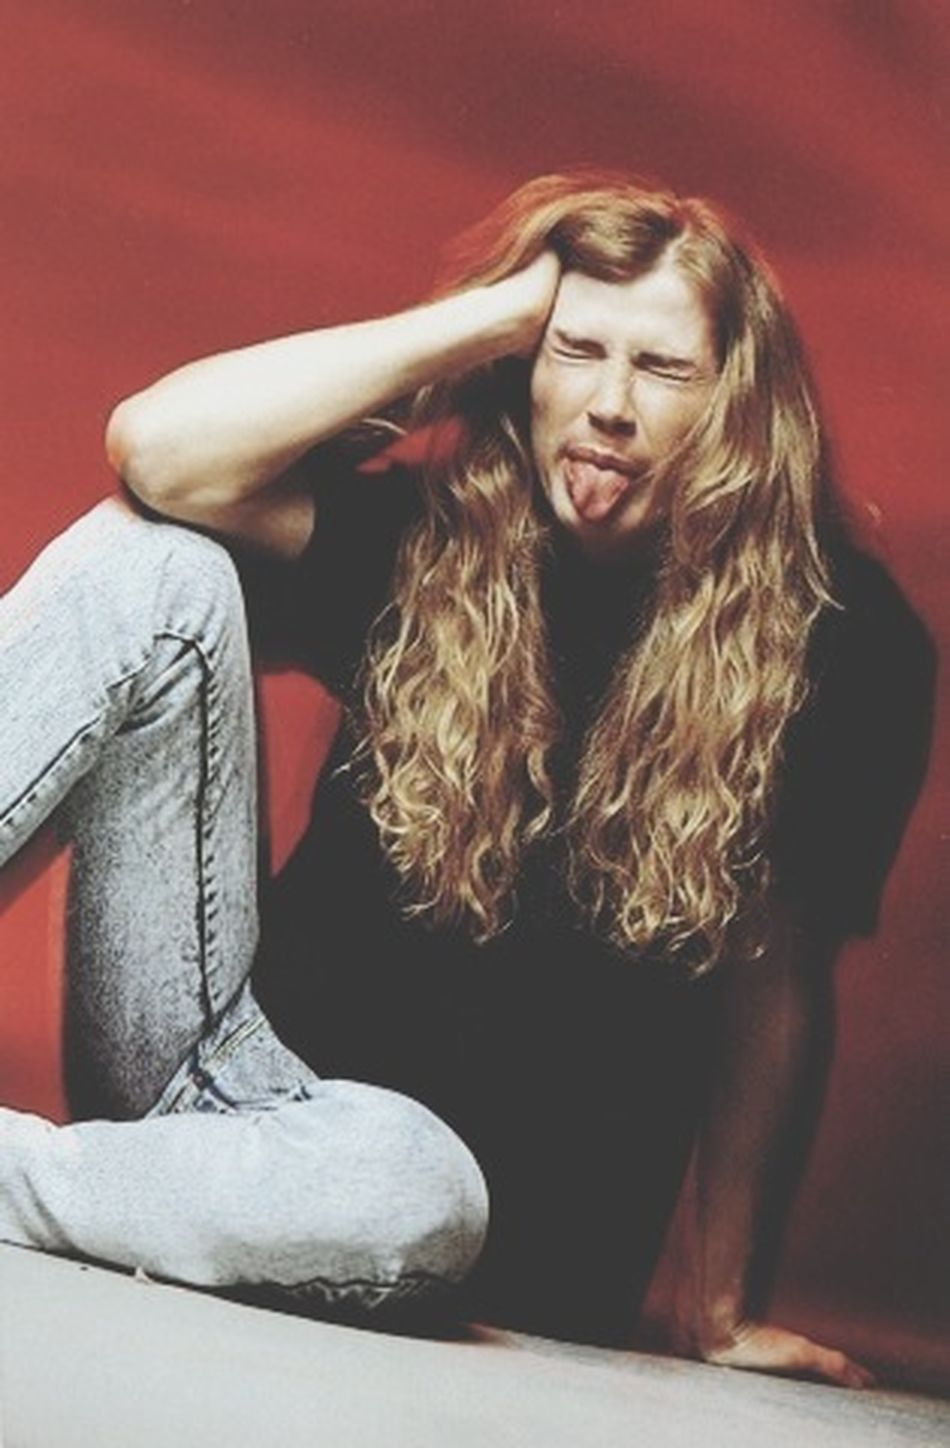 Aww, he's such an angel Dave Mustaine Megadeth